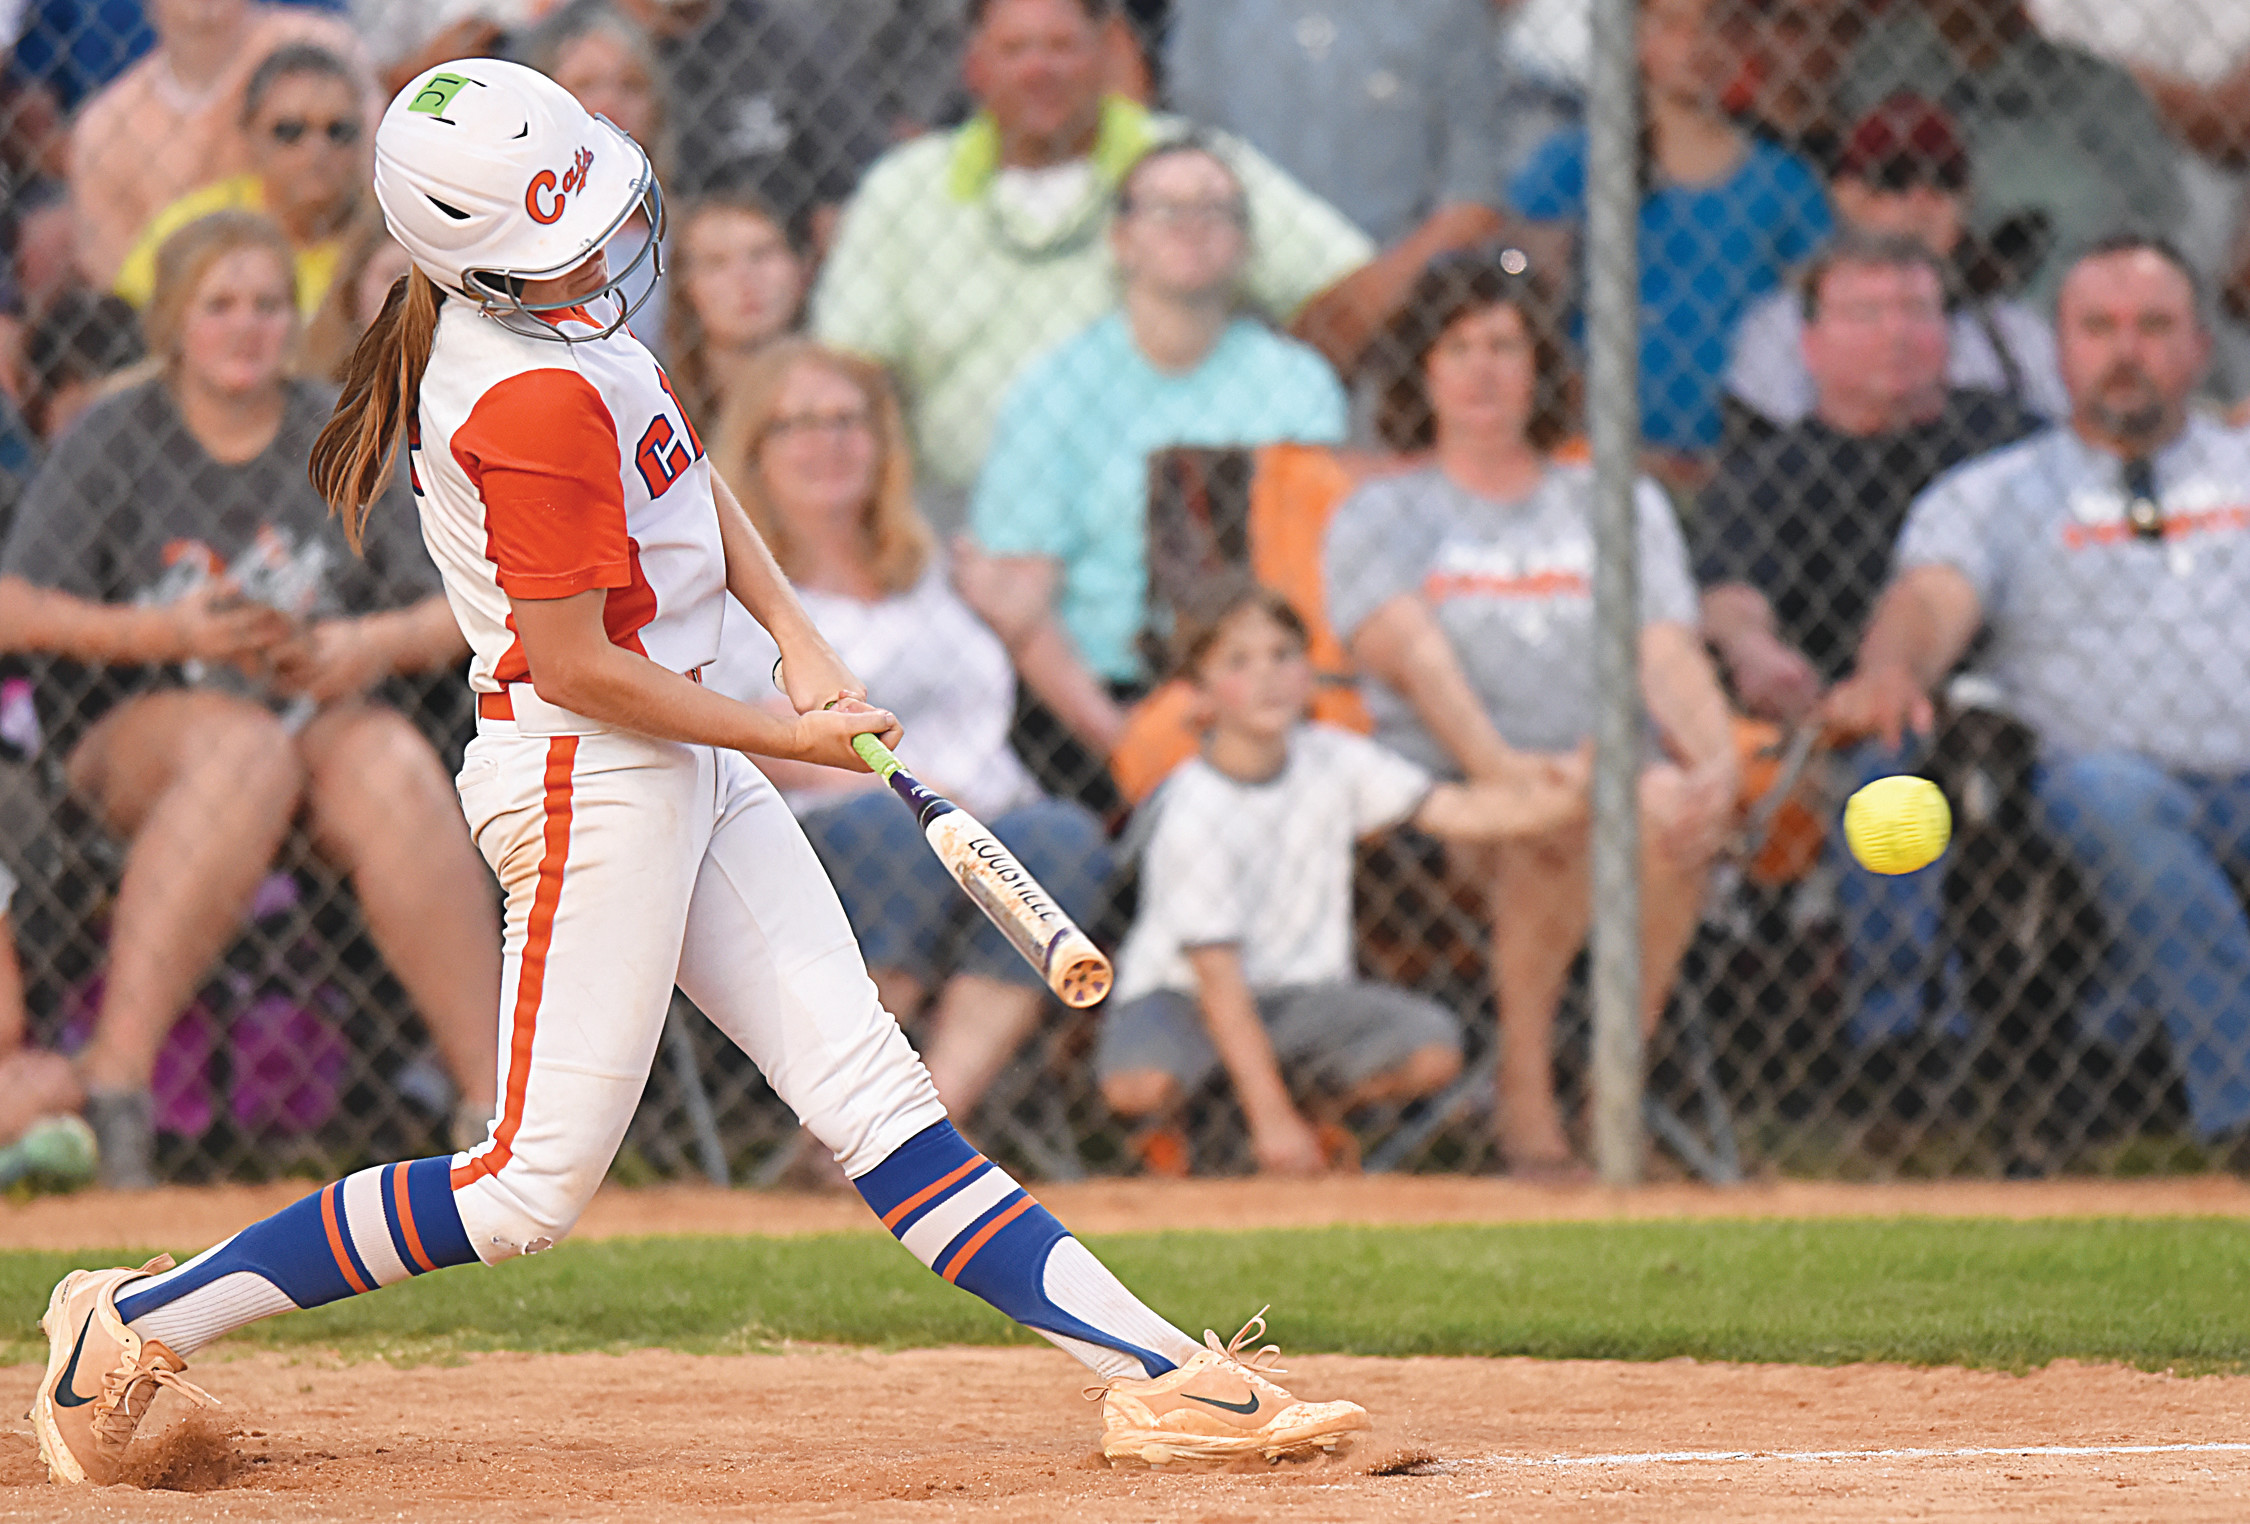 Laurence Manning Academy shortstop Brooke Ward hammers a line drive that hits third  base and stays fair during the Lady Swampcats' come-from-behind 3-2 victory over Wilson Hall in extra innings in the deciding game of the SCISA 3A state championship series.